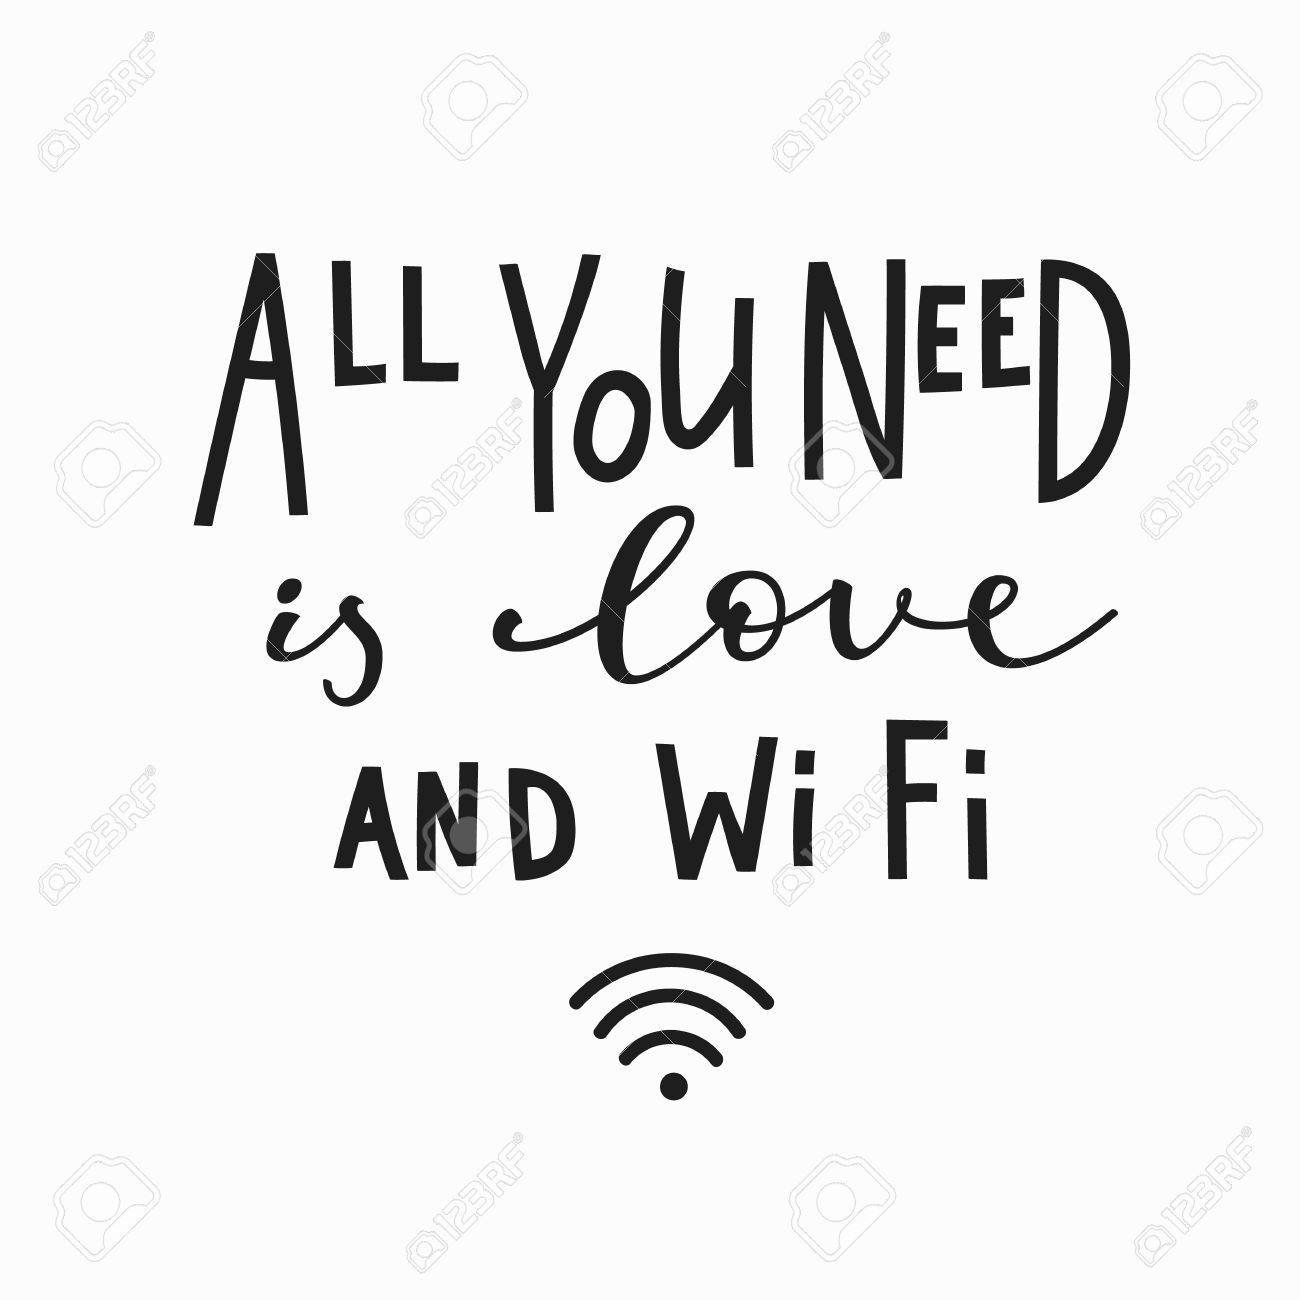 All You Need Is Love Romantic Travel Quote Lettering And Calligraphy